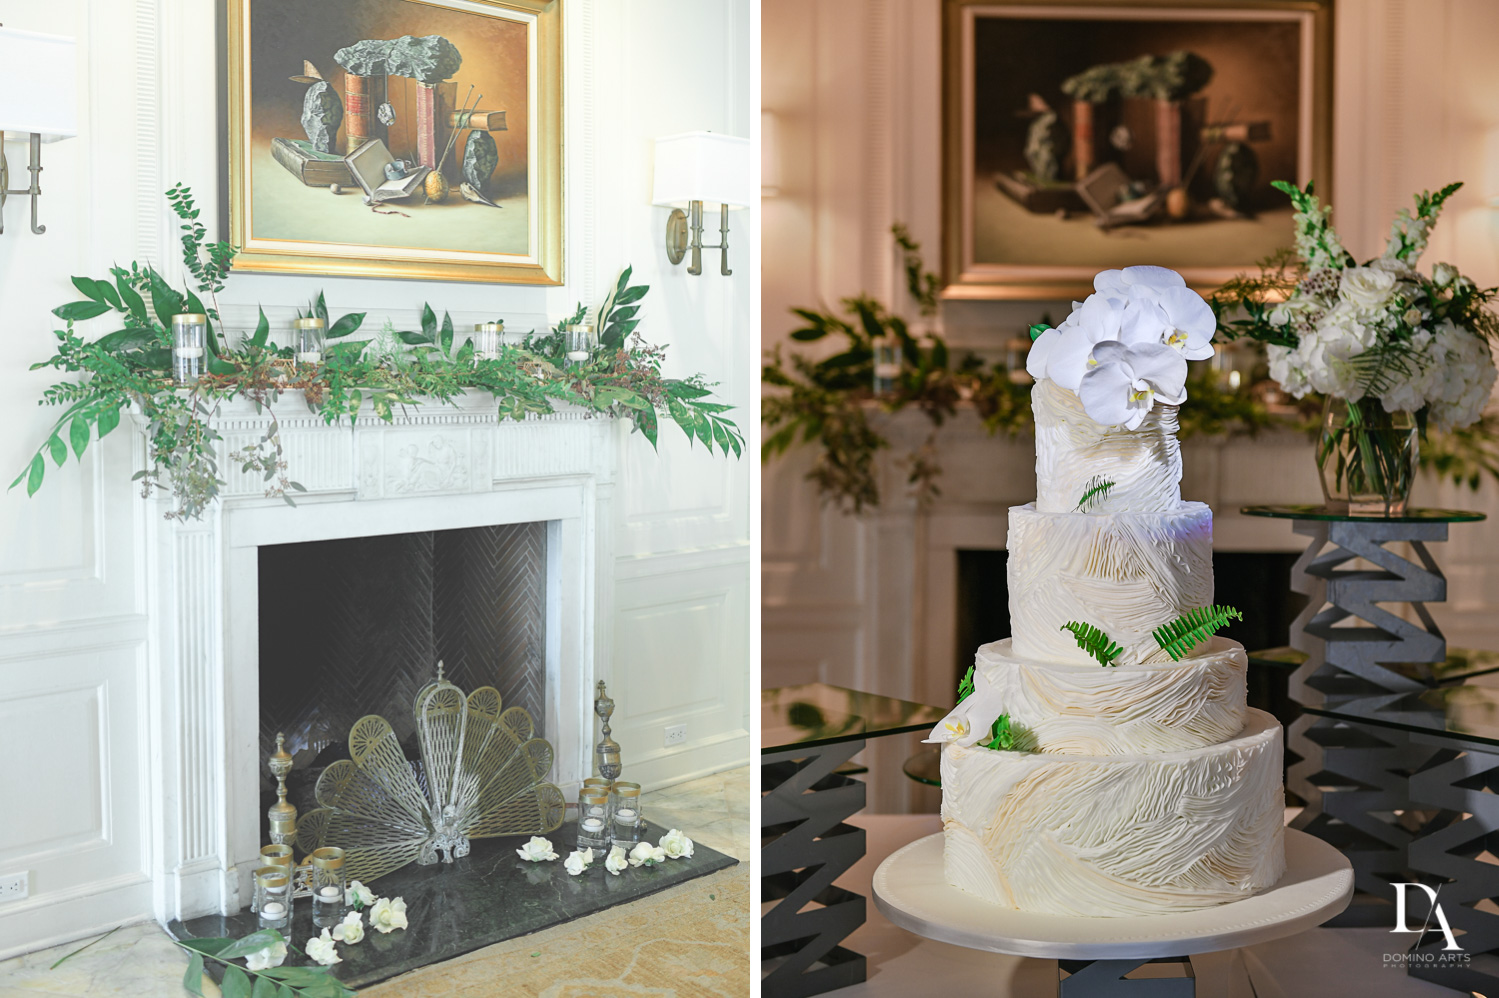 wedding cake at Tropical Garden Wedding at Fisher Island Miami by Domino Arts Photography